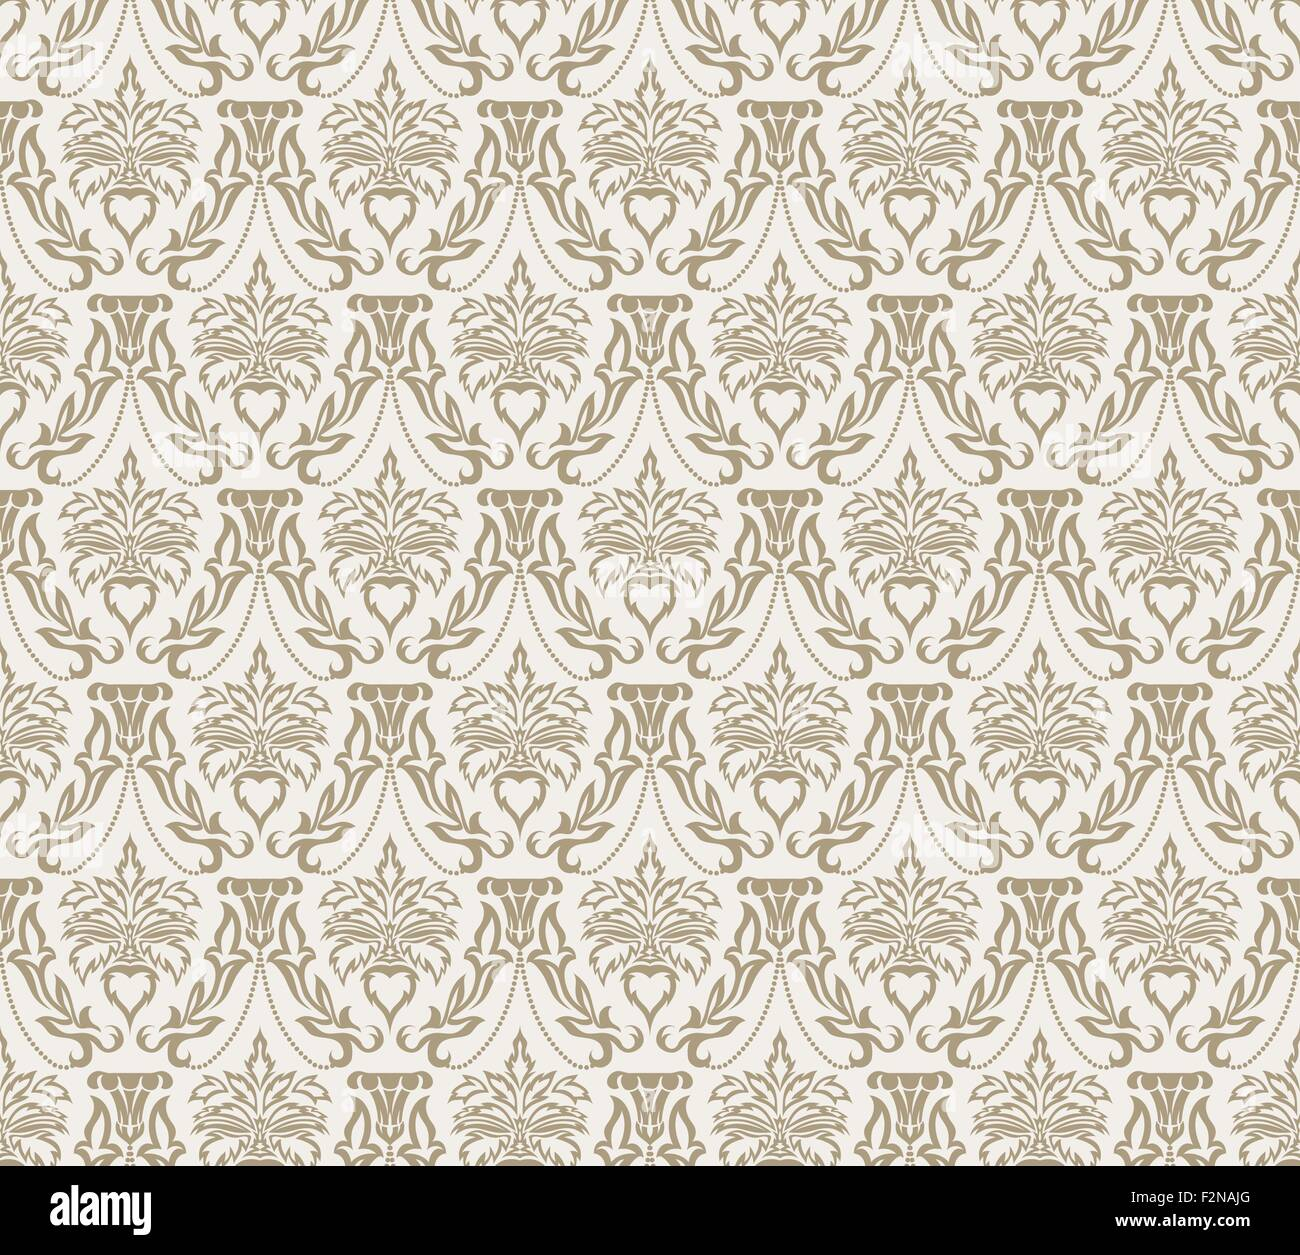 Elegant Design In Royal Baroque Style Background Texture Floral And Swirl Element Ideal For Textile Print WallpapersVector Illustration